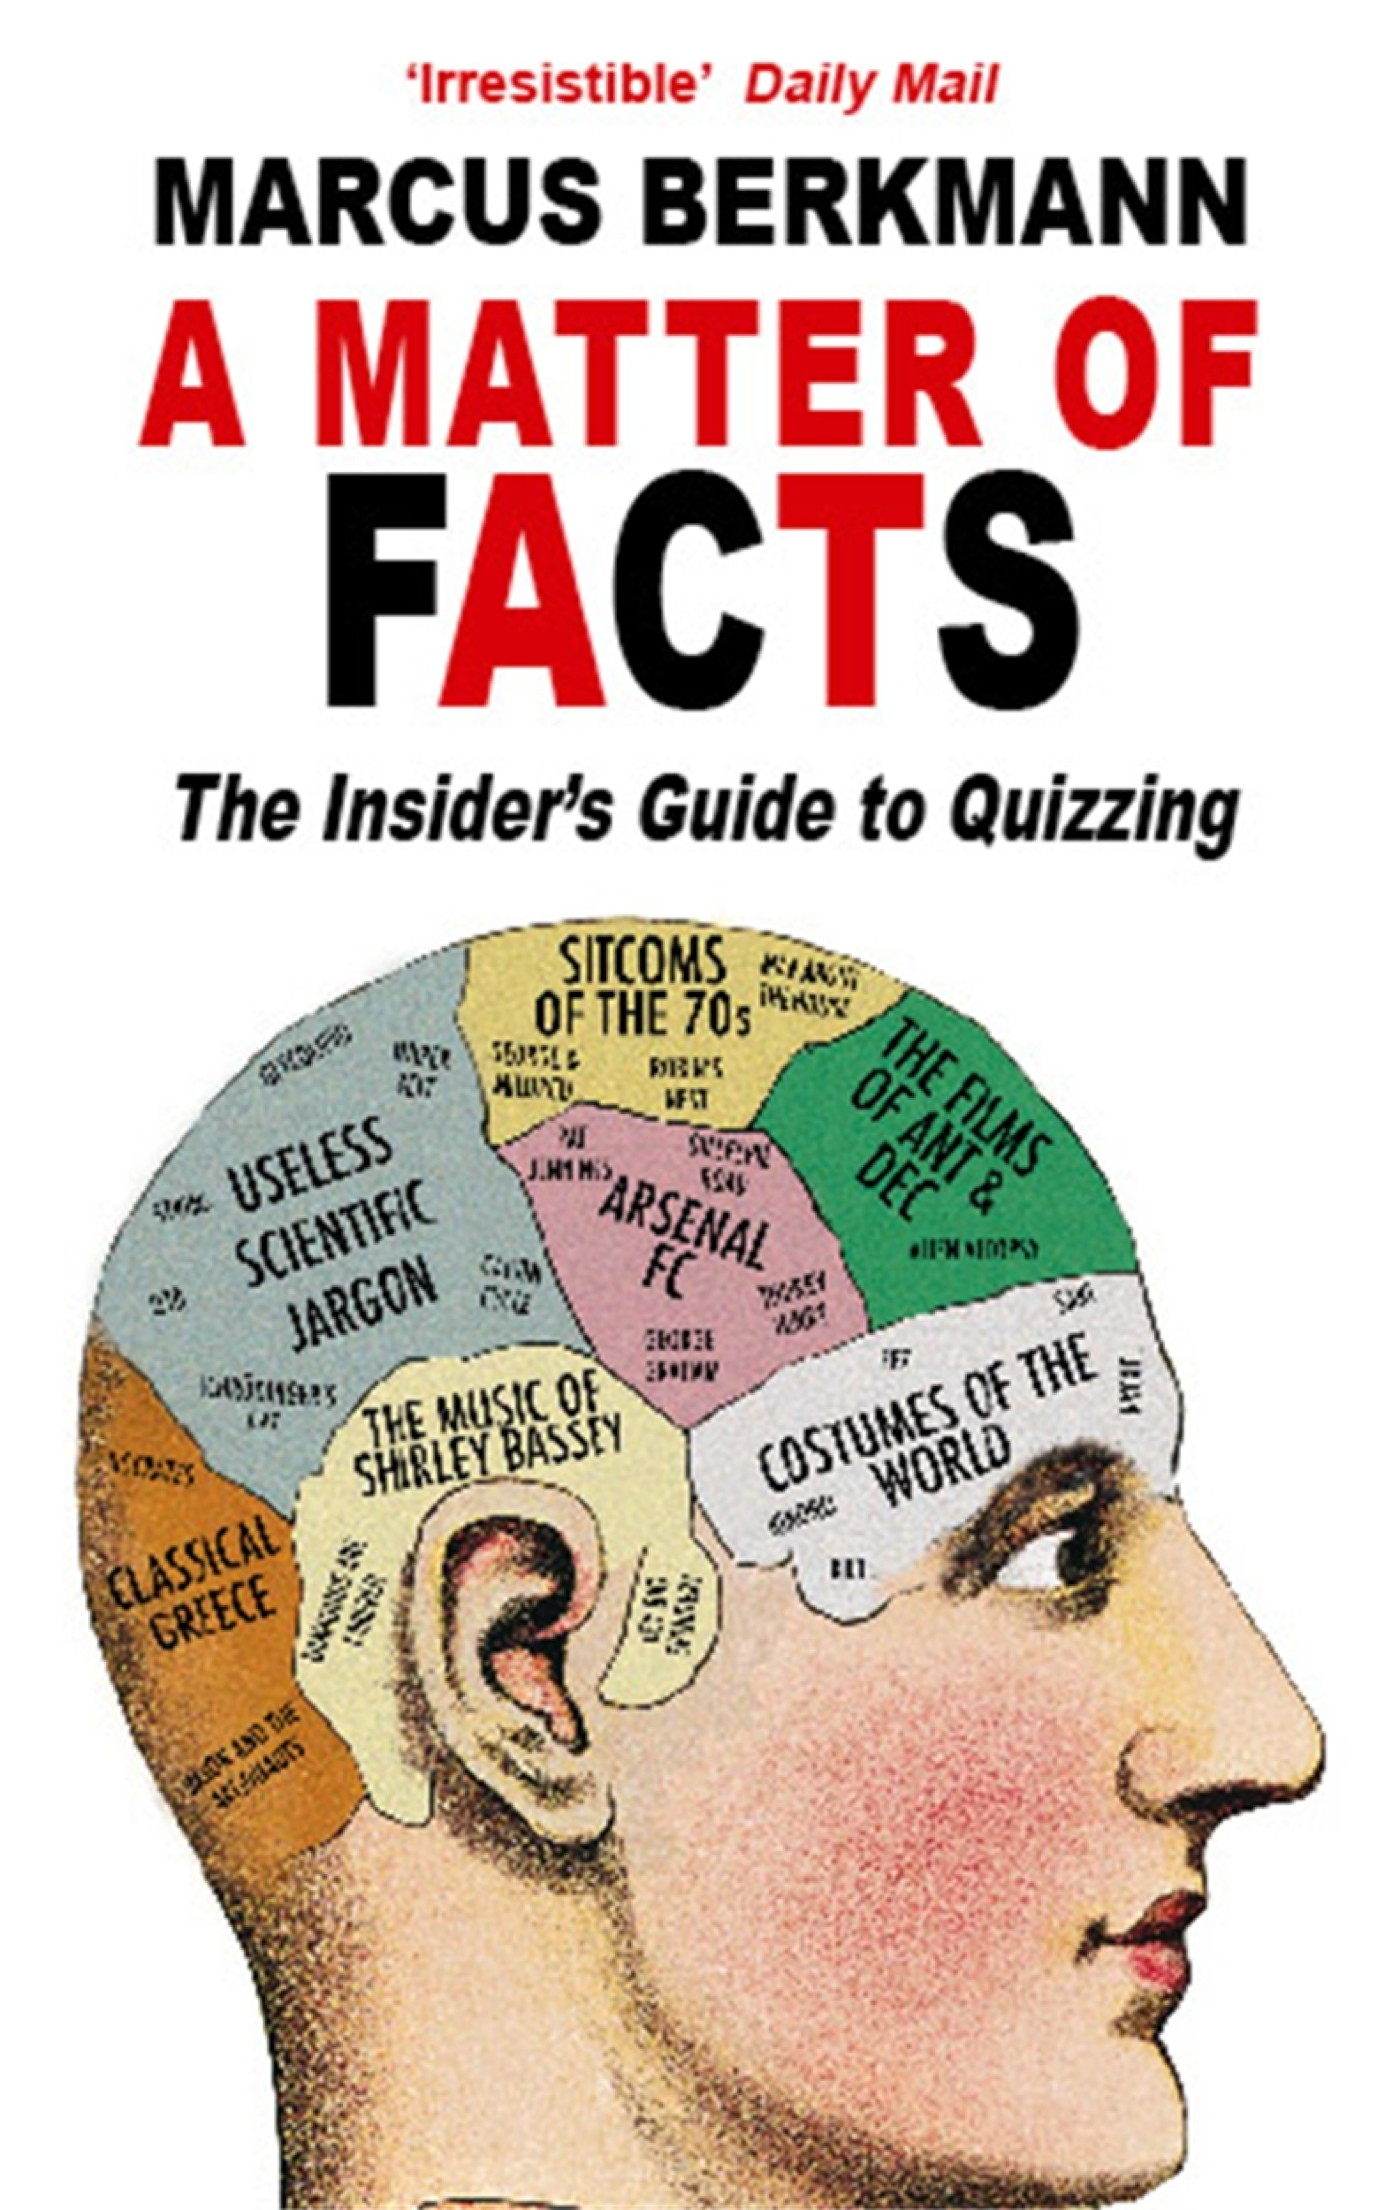 A Matter Of Facts: The Insider's Guide To Quizzing